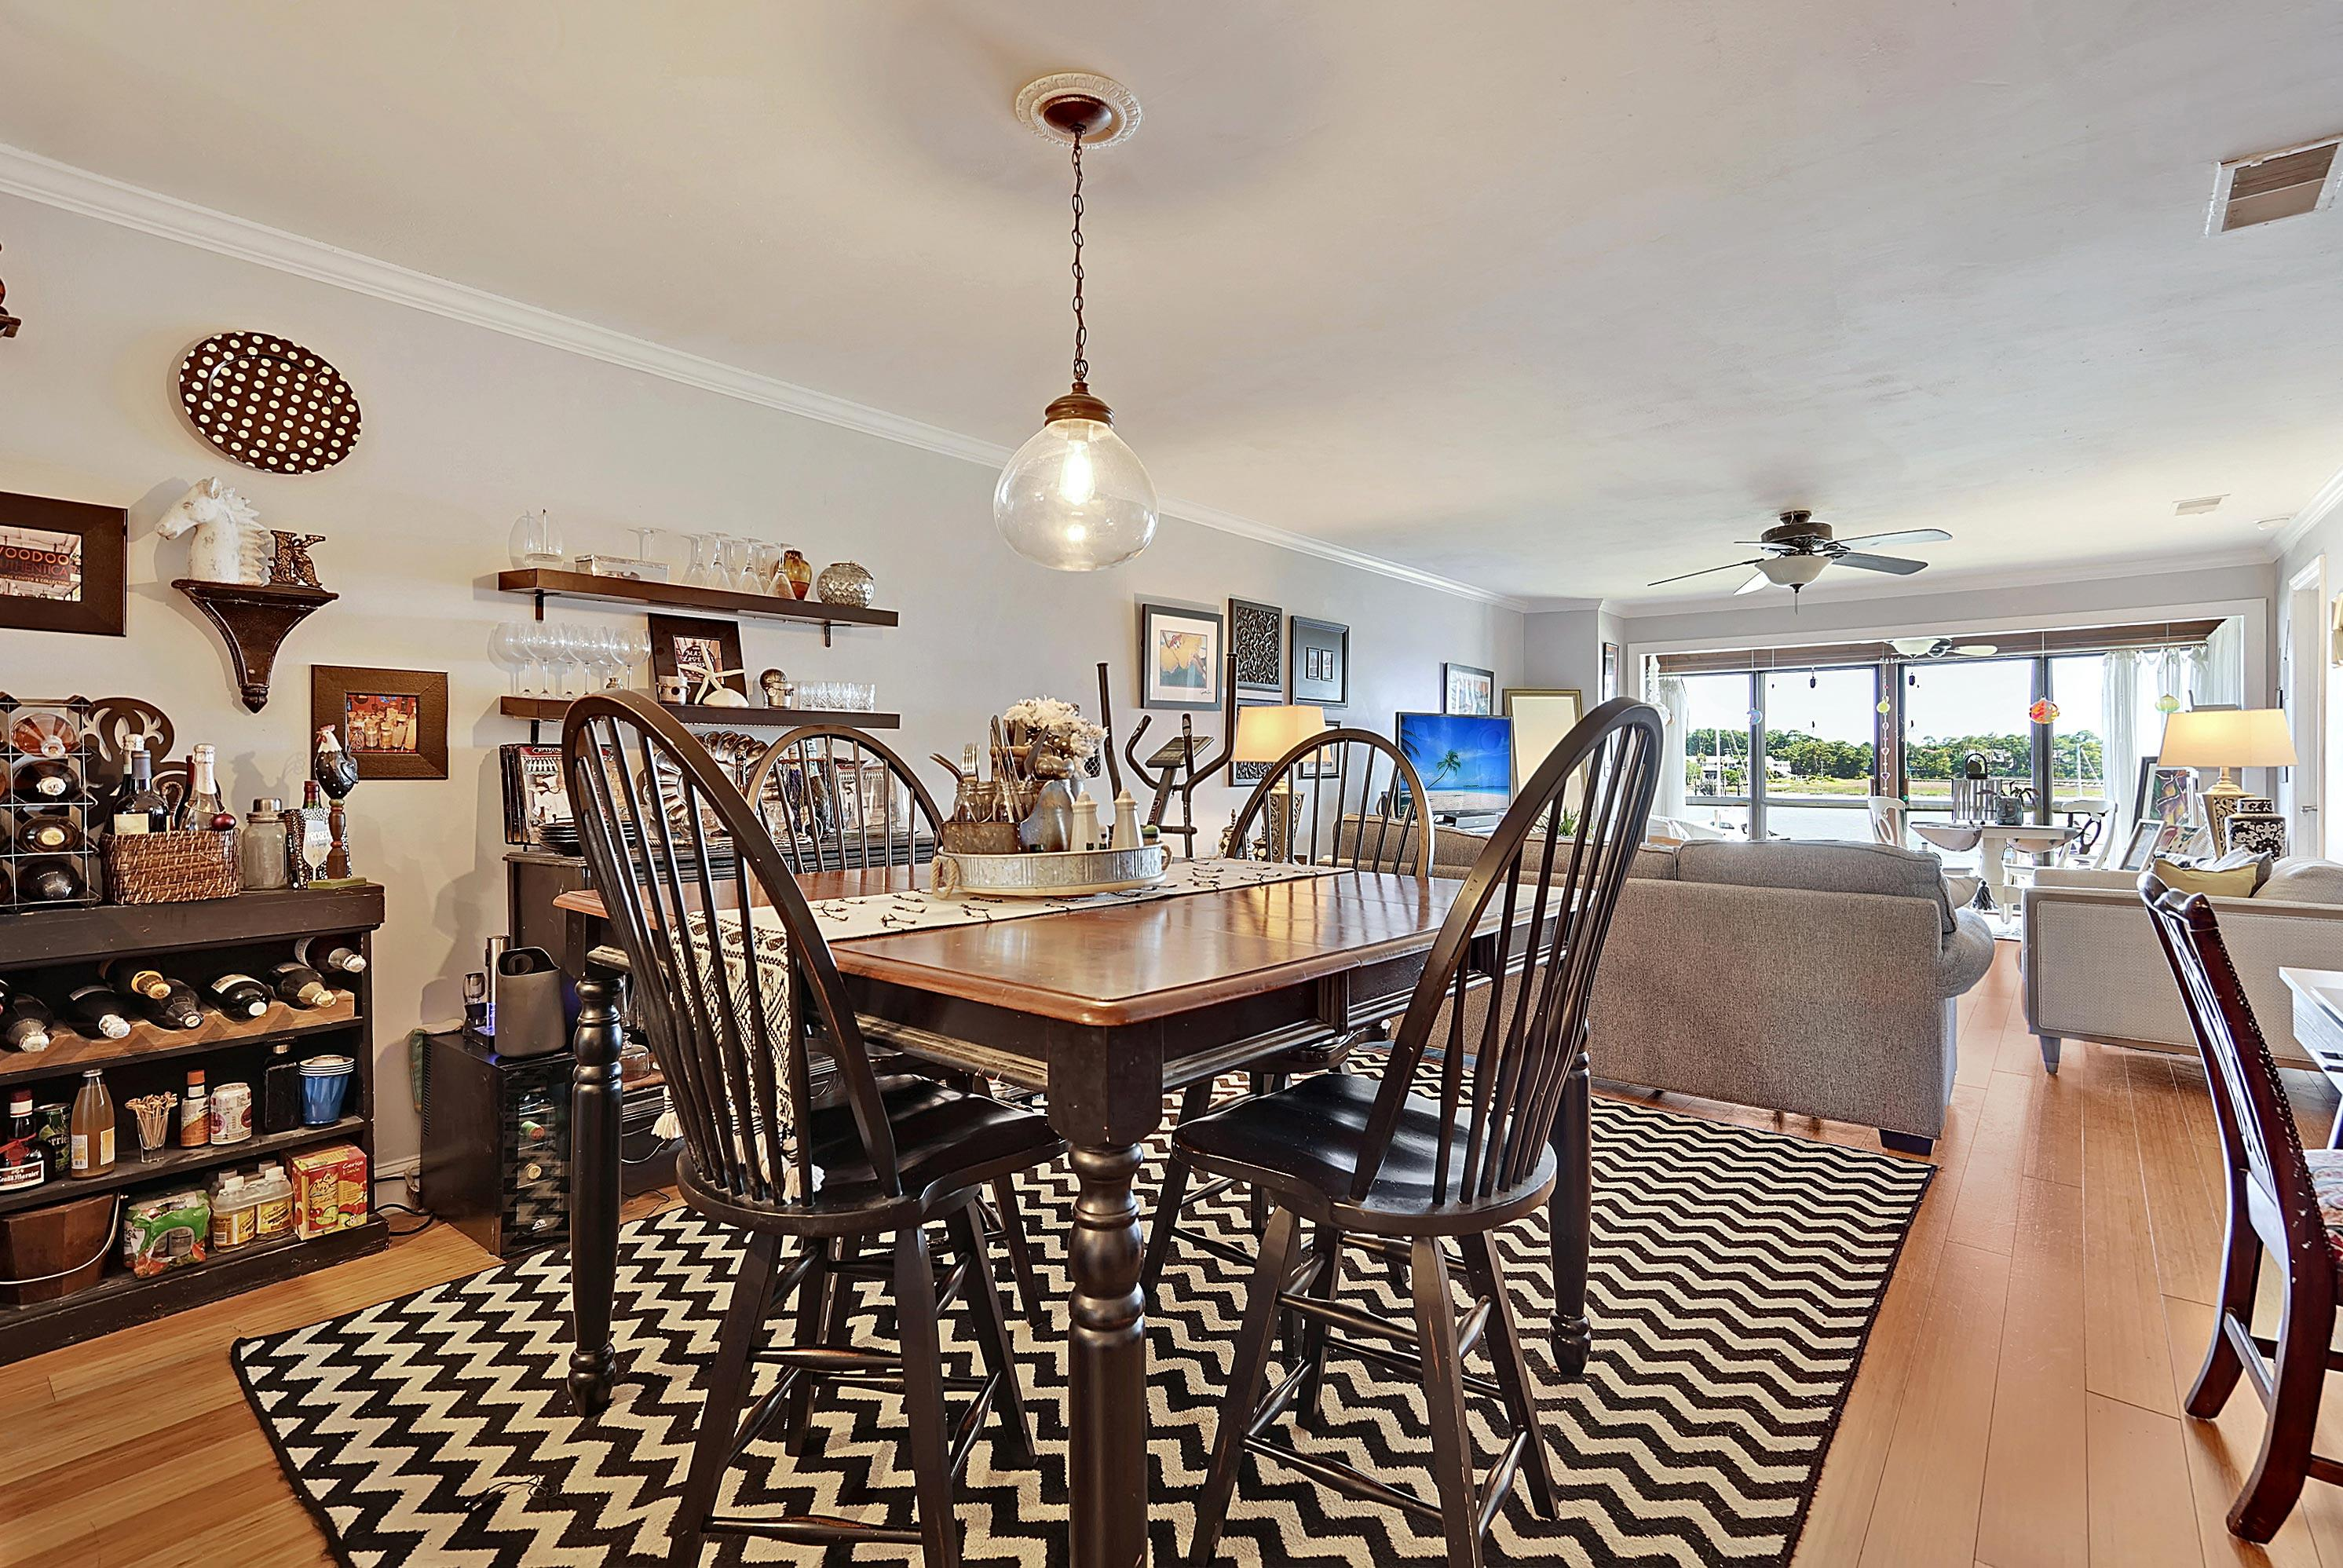 Mariners Cay Homes For Sale - 63 Mariners Cay, Folly Beach, SC - 34